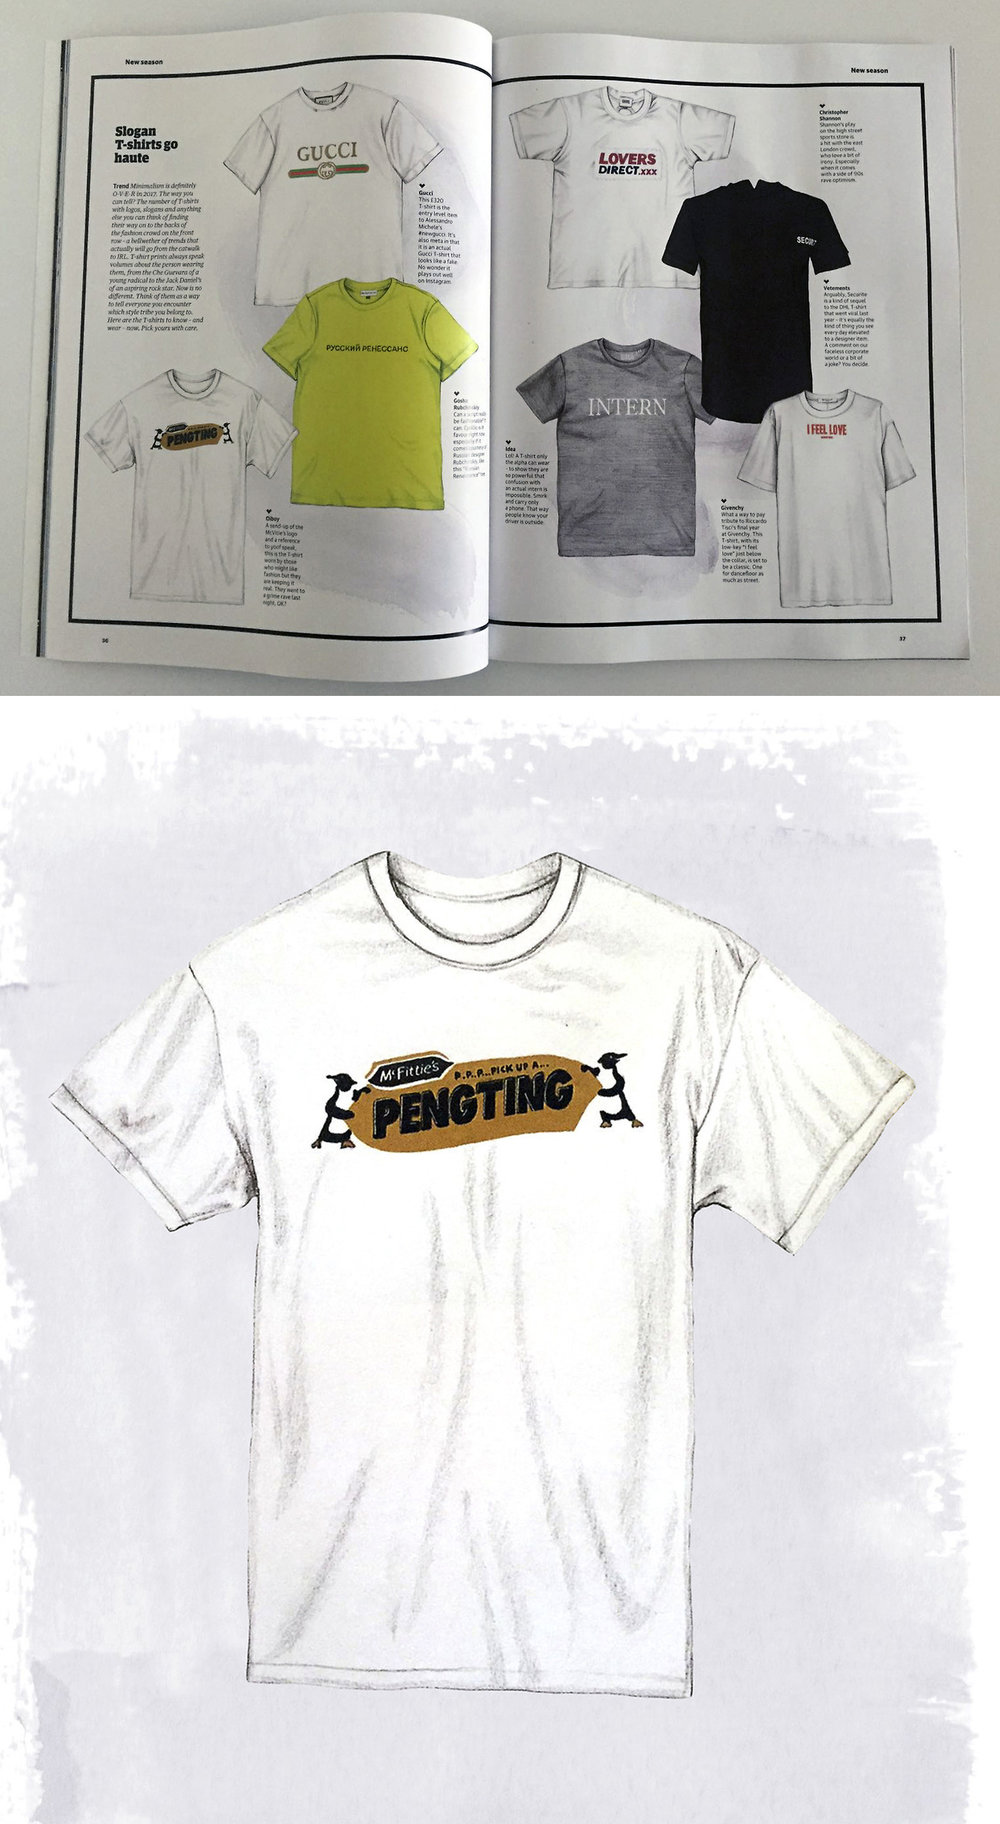 OUR #PENGTING TEE IN THE BIANNUAL @GUARDIANFASHION MAGAZINE OUT TODAY WITH THE LIKES OF #GUCCI #GOSHARUBCHINSKIY #IDEA #GIVENCHY #VETEMENTS & @CHRISTOPHER_SHANNON AND #OIBOY